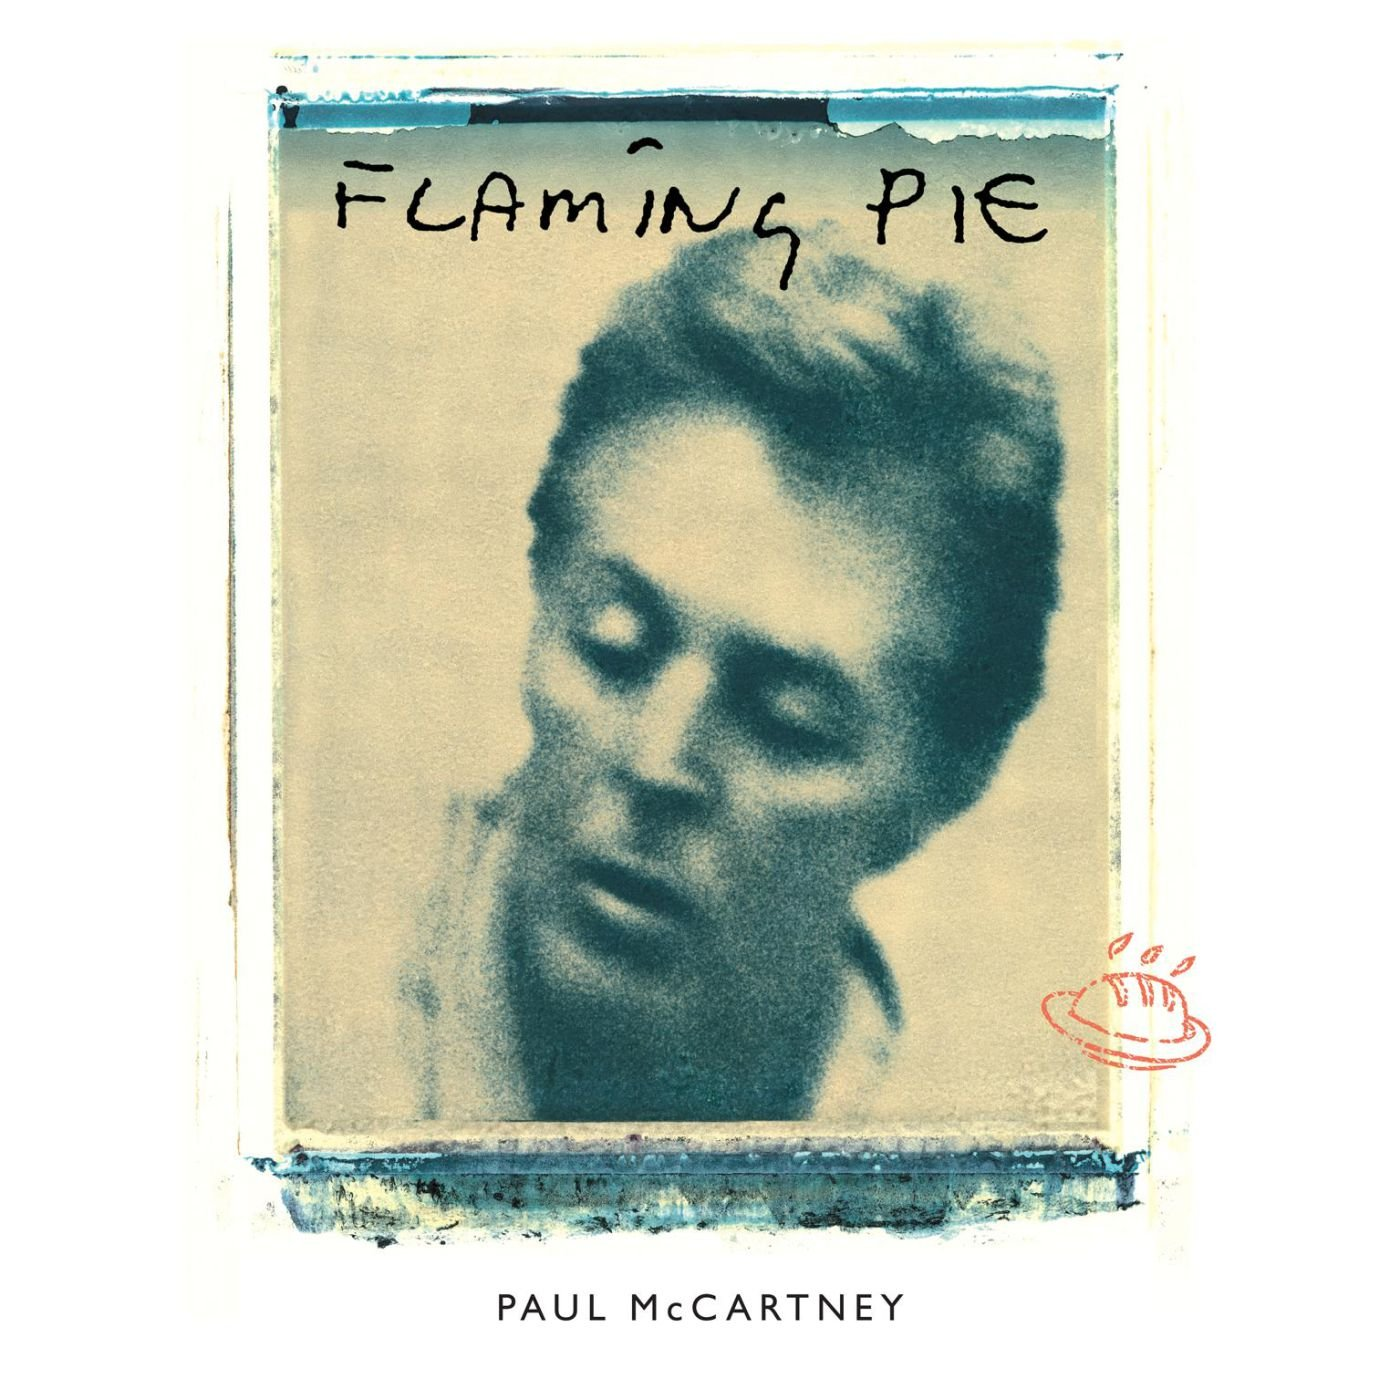 Paul Mccartney - Archive Collection - Flaming Pie (2021) 5CD